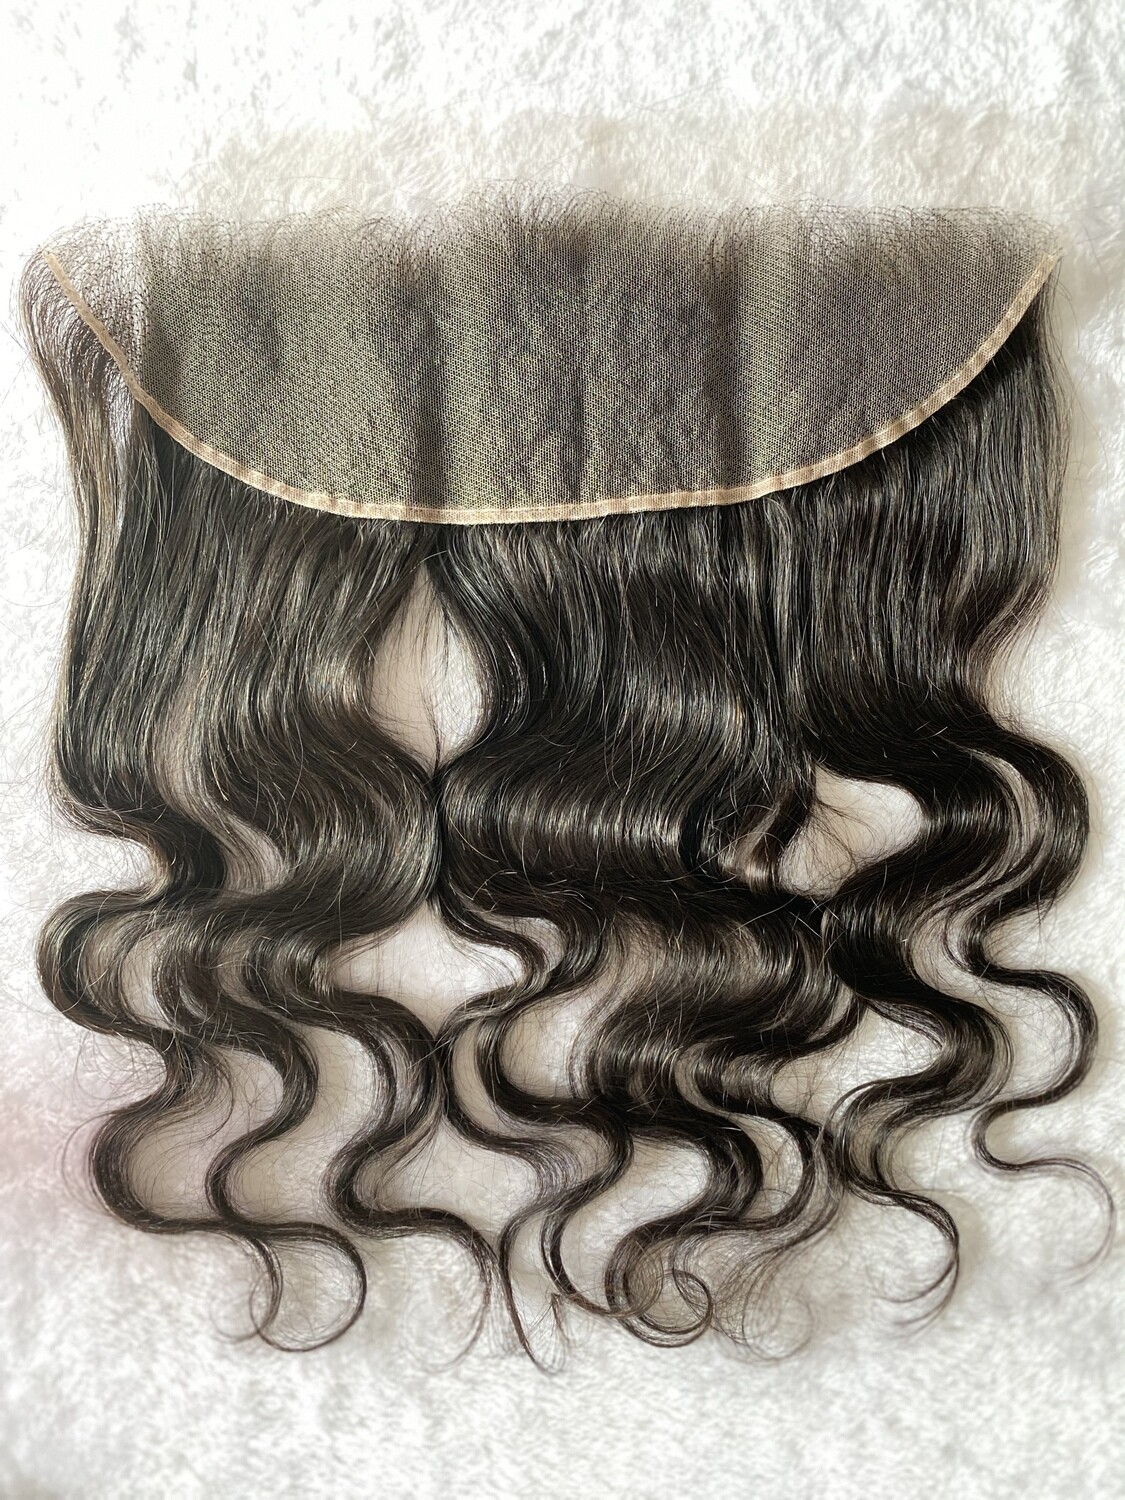 13 x 4 HD Lace Frontal Body Wave